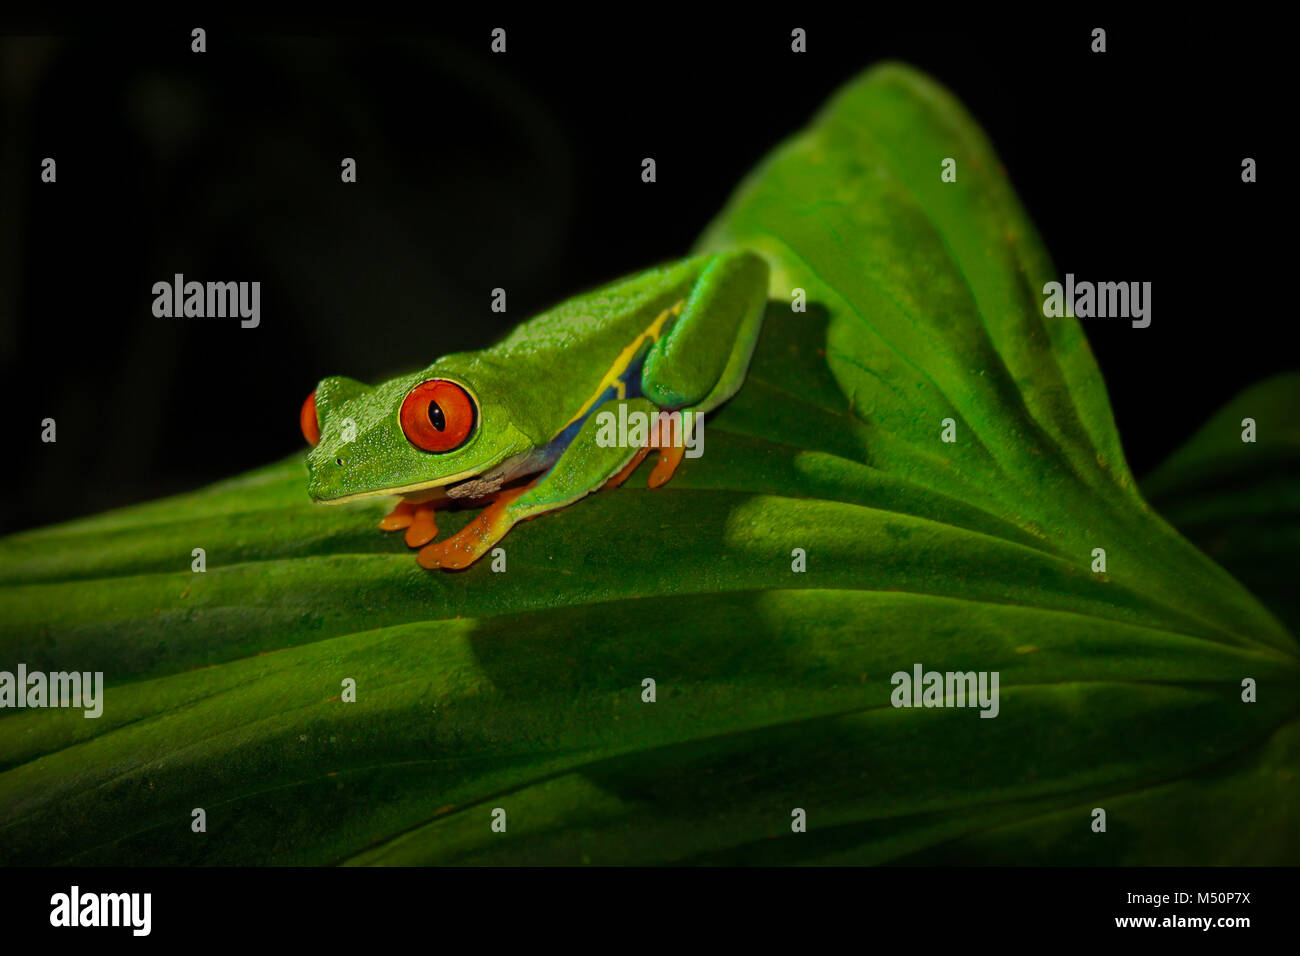 Red-Eyed Tree Frog before jumping - Stock Image